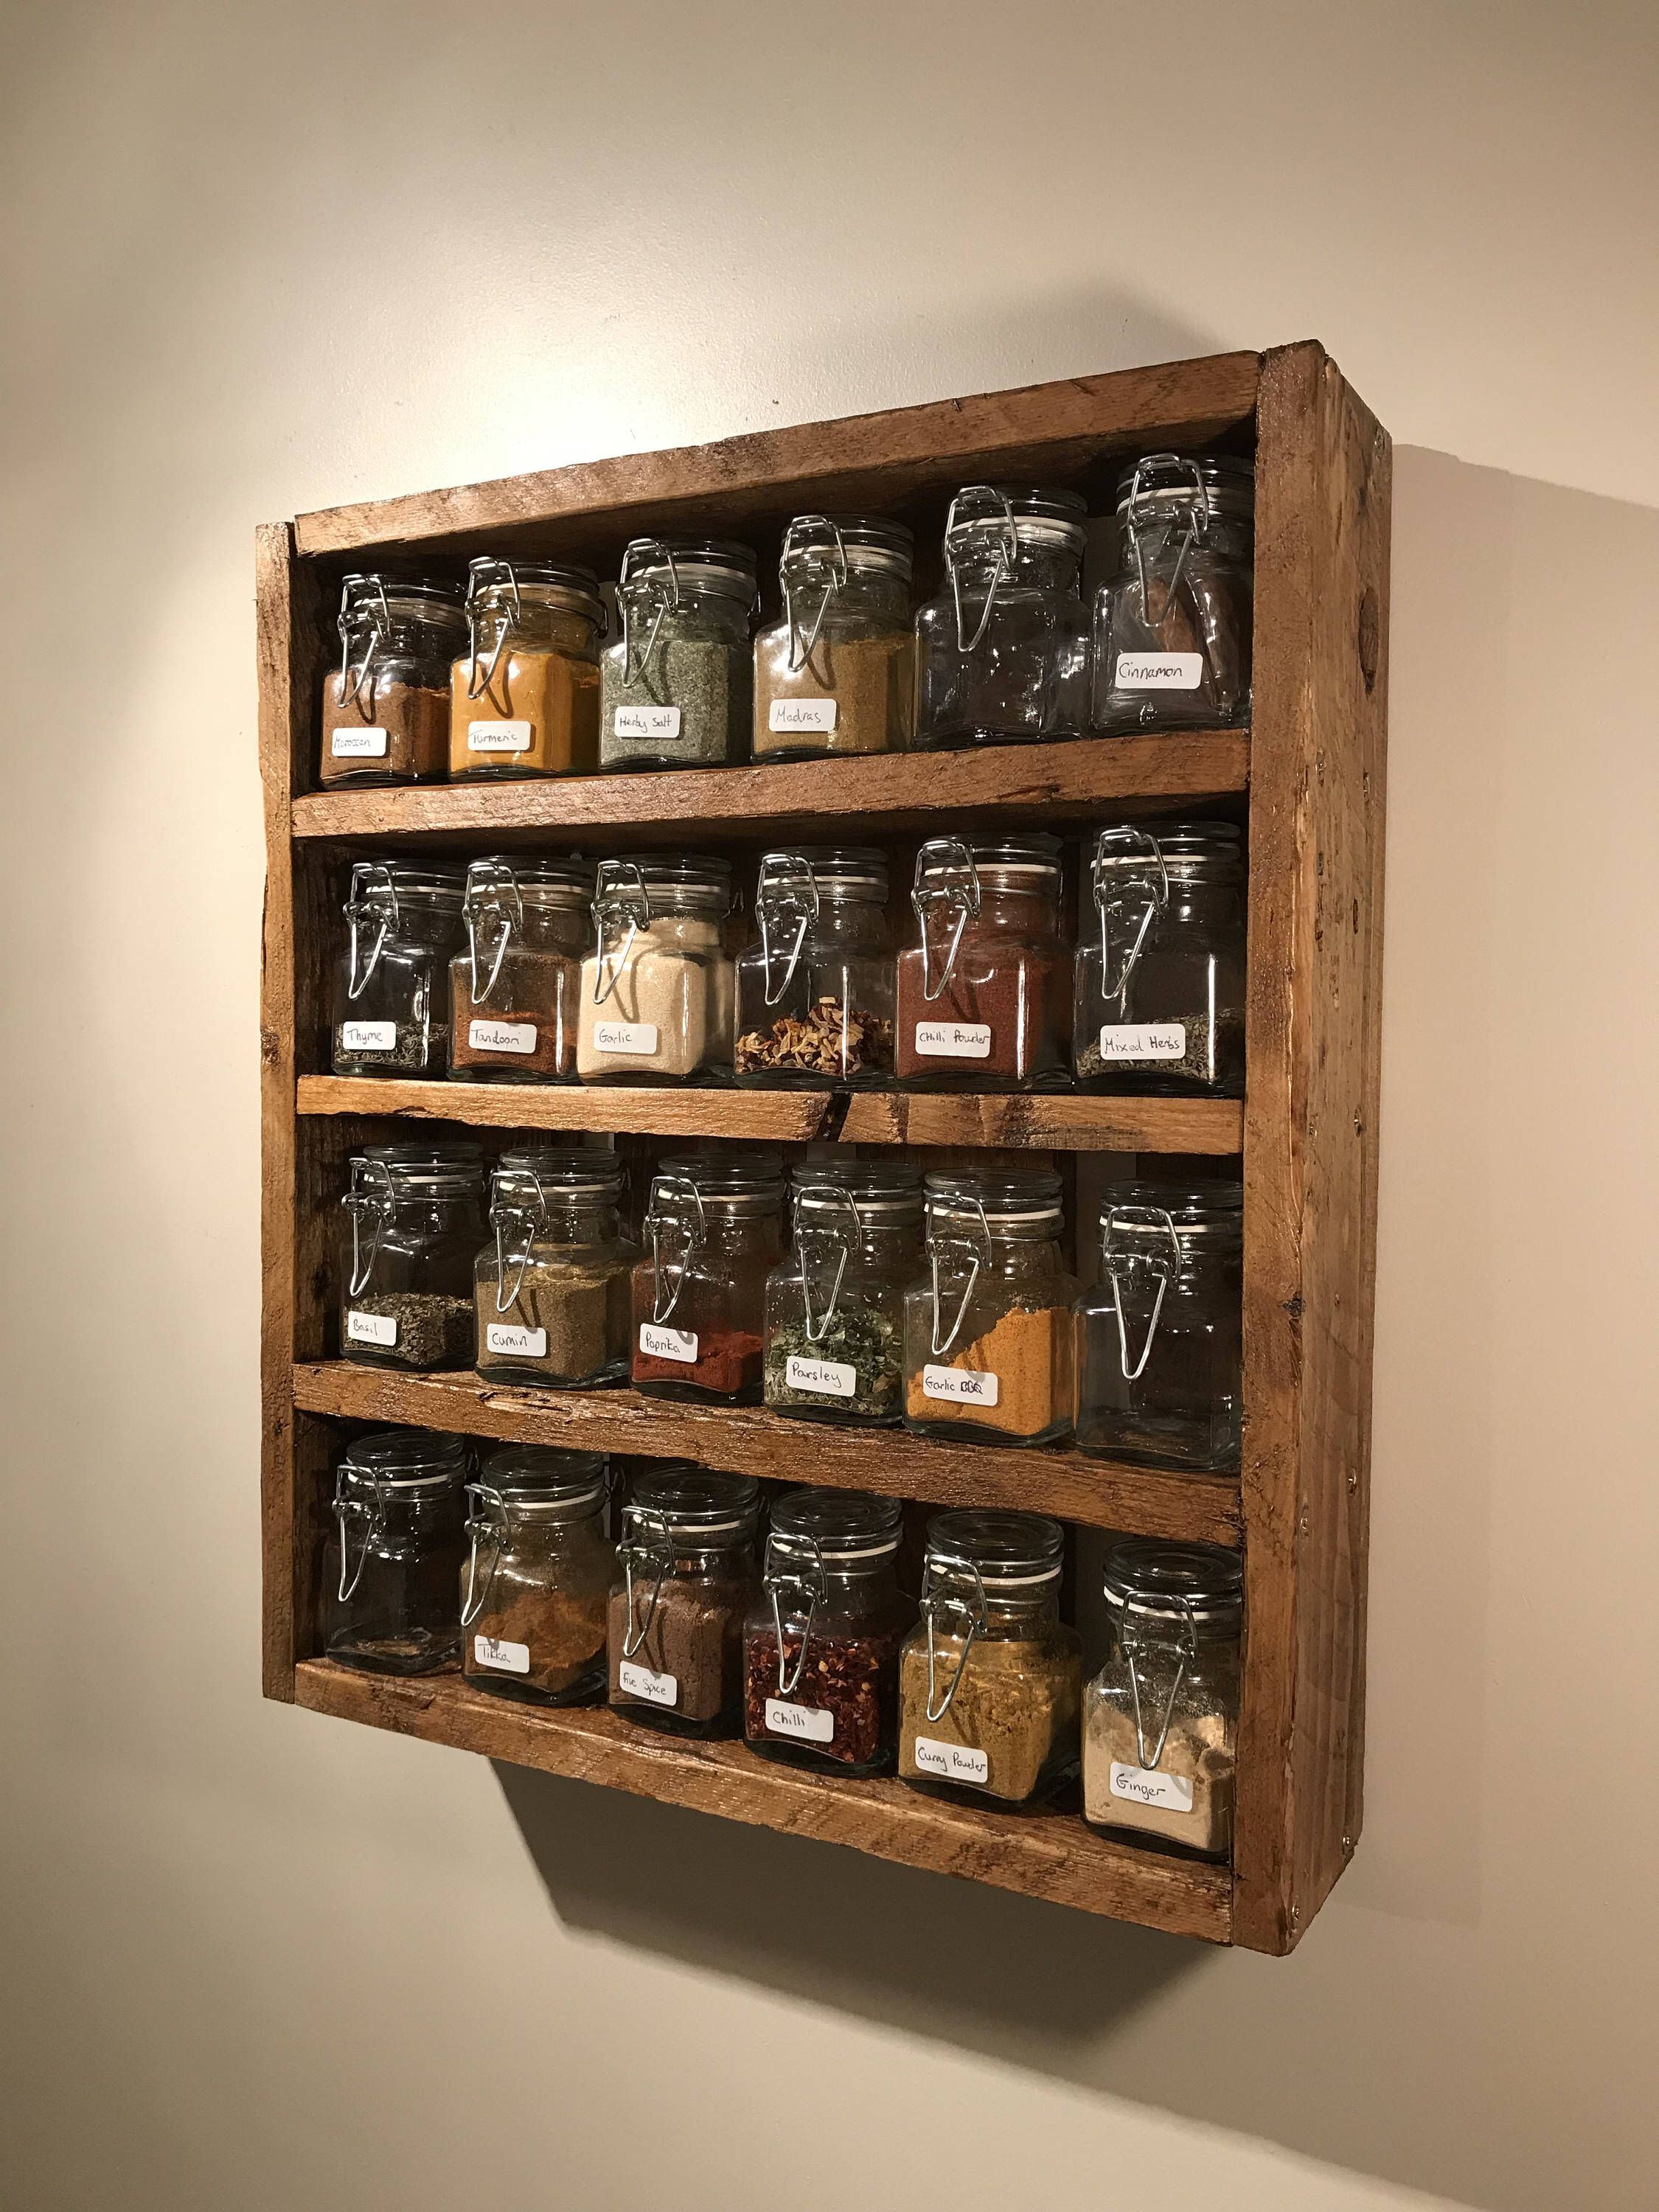 Rustic Spice Rack Includes Jars Reclaimed Pallet Wood Handmade Kitchen Storage By Diyprojectsshop On Diy Kitchen Storage Diy Storage Rack Handmade Kitchens